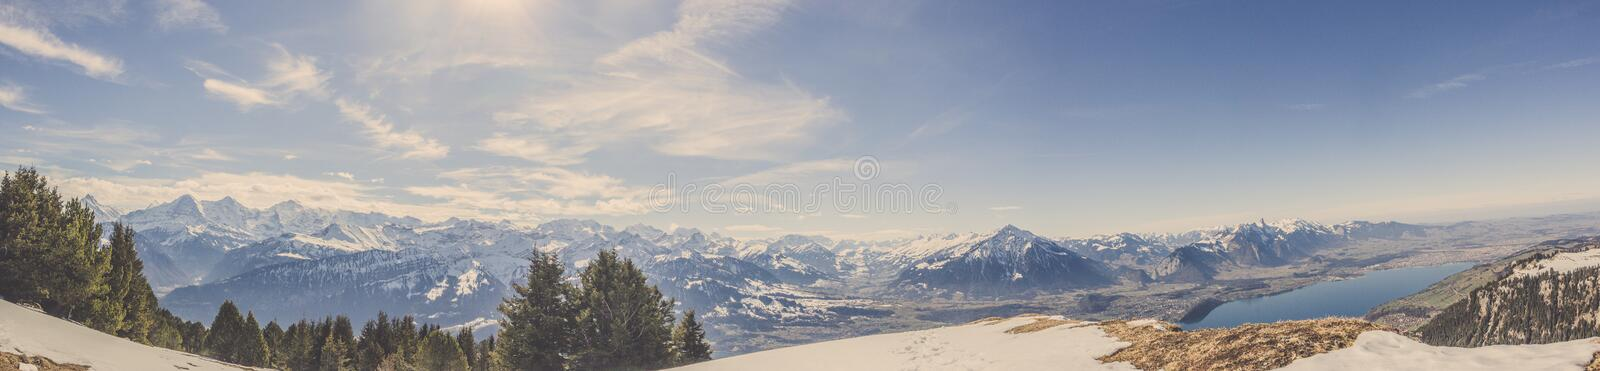 Panorama view of Swiss Alps mountai in winter with forest and blue sky royalty free stock image